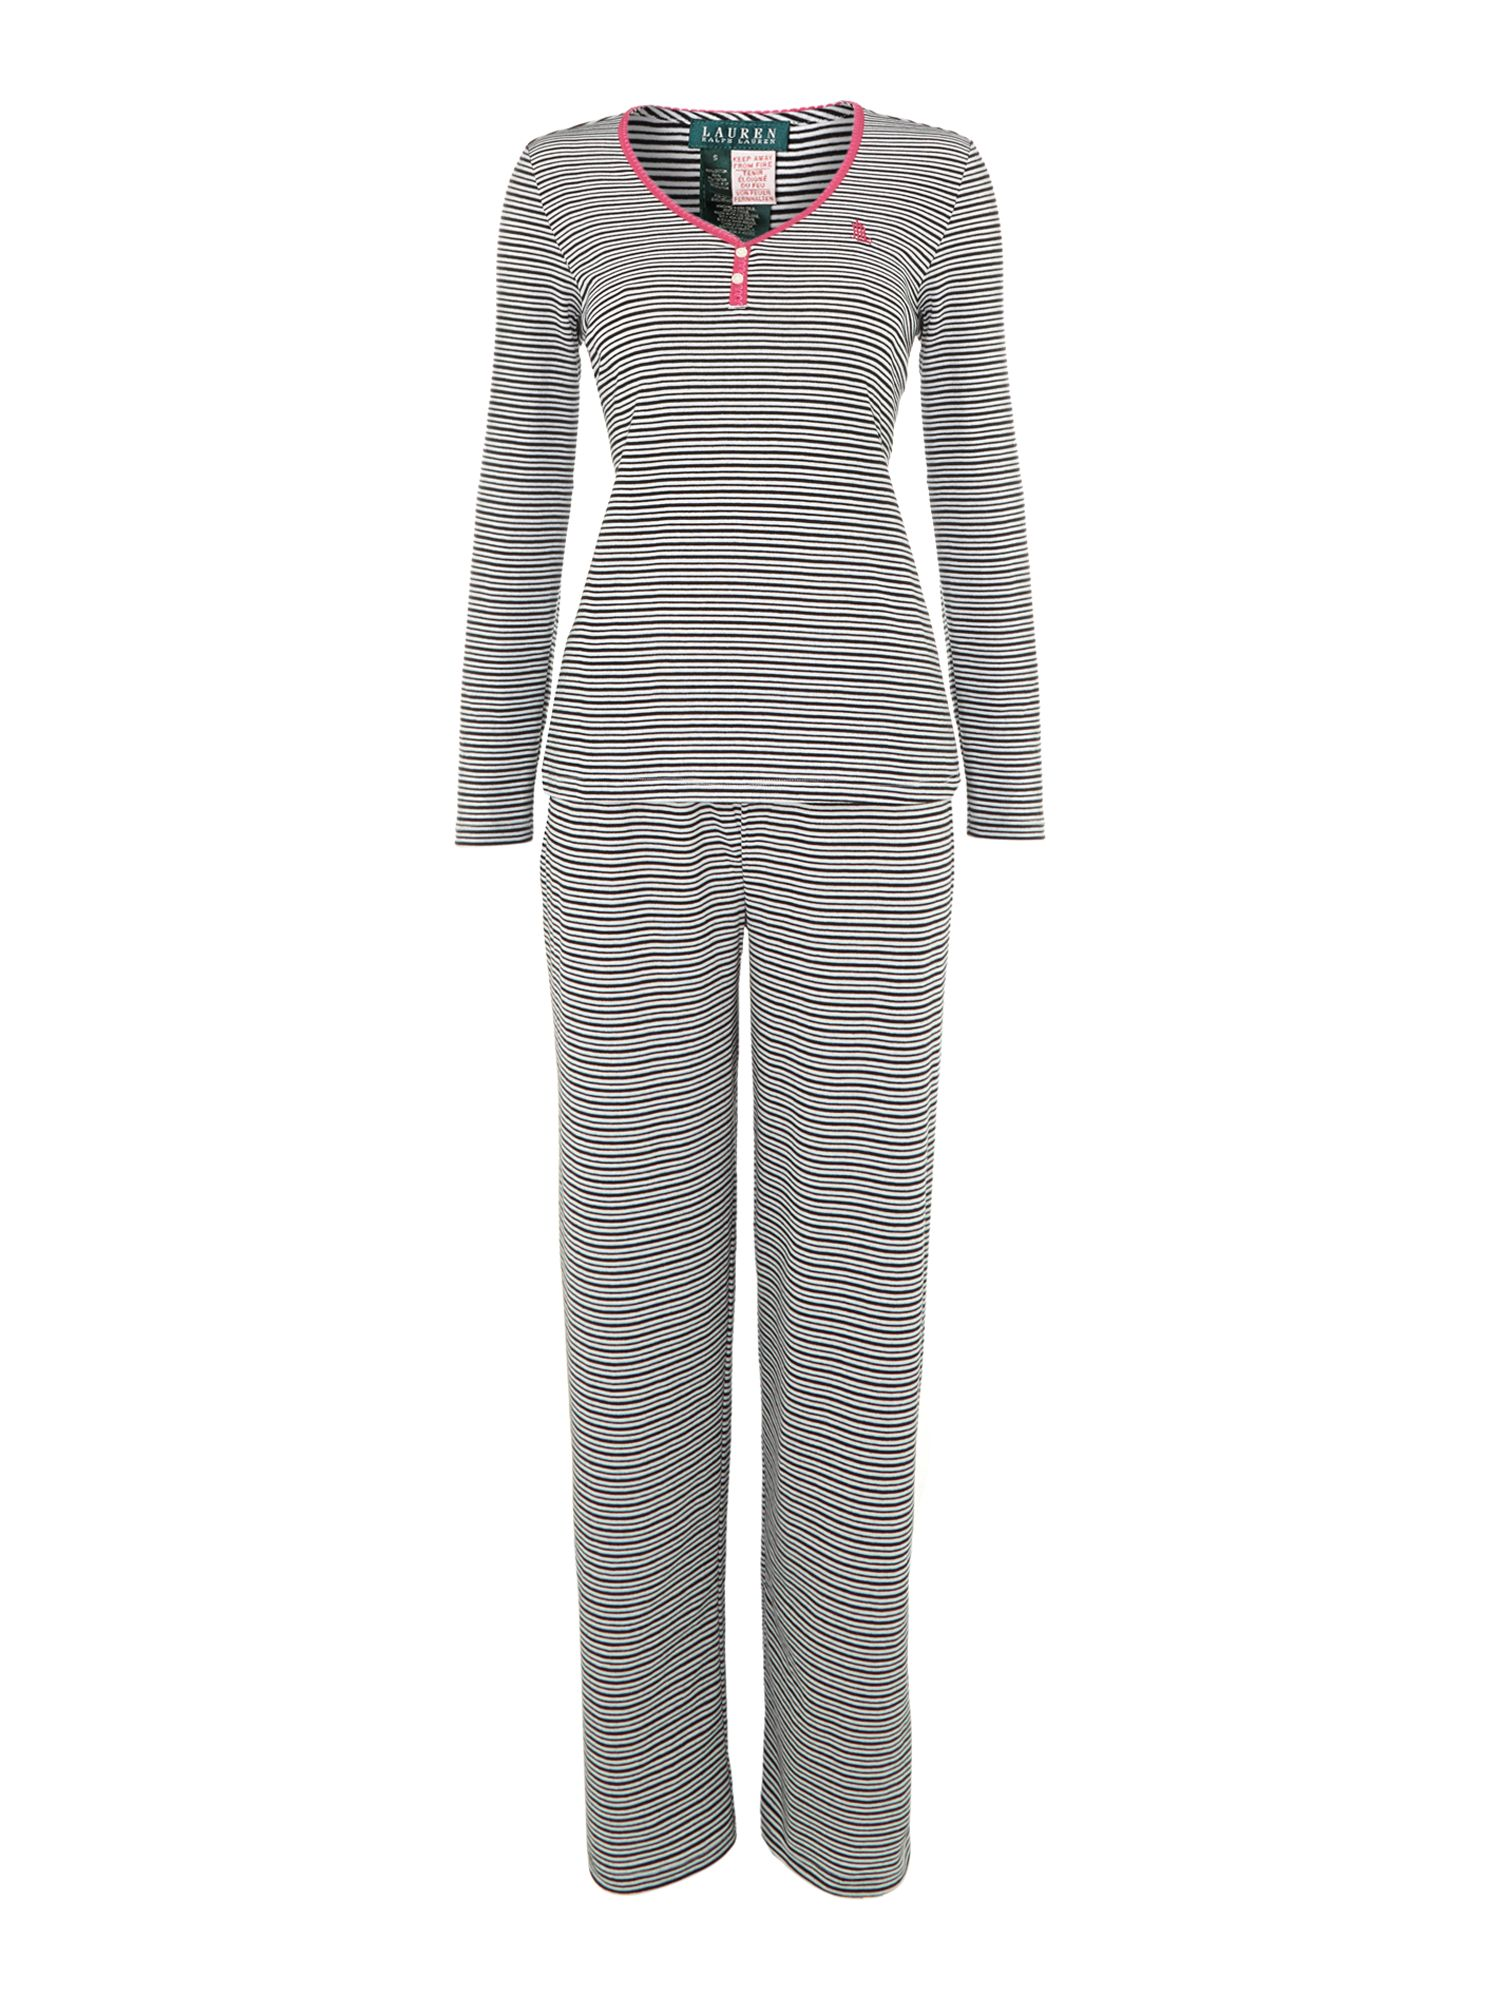 Verona stripe pj set